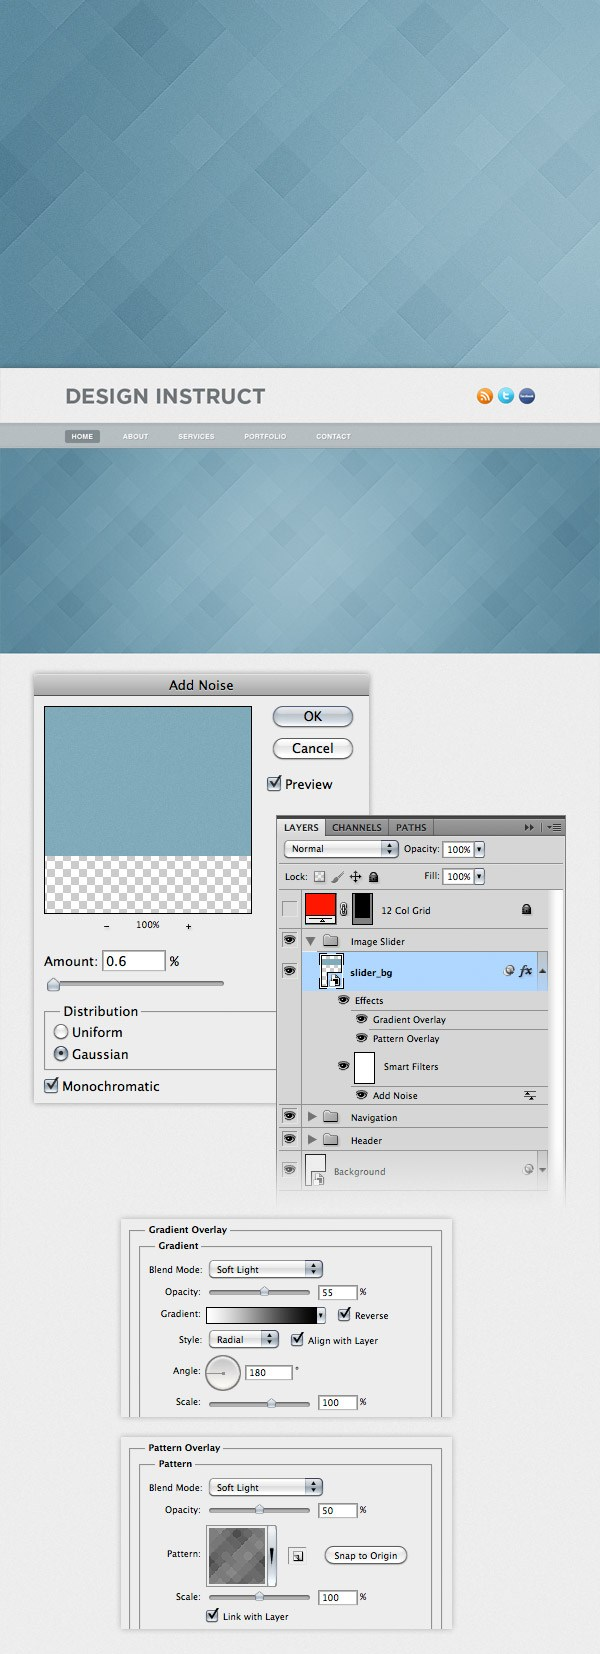 Irresistible Use Settings From Following N Go To Filter Noise Add Noiseand Add A Create A Light Textured Web Design Photoshop On This Layer To Open Layer Style Window dpreview Photoshop Flip Layer